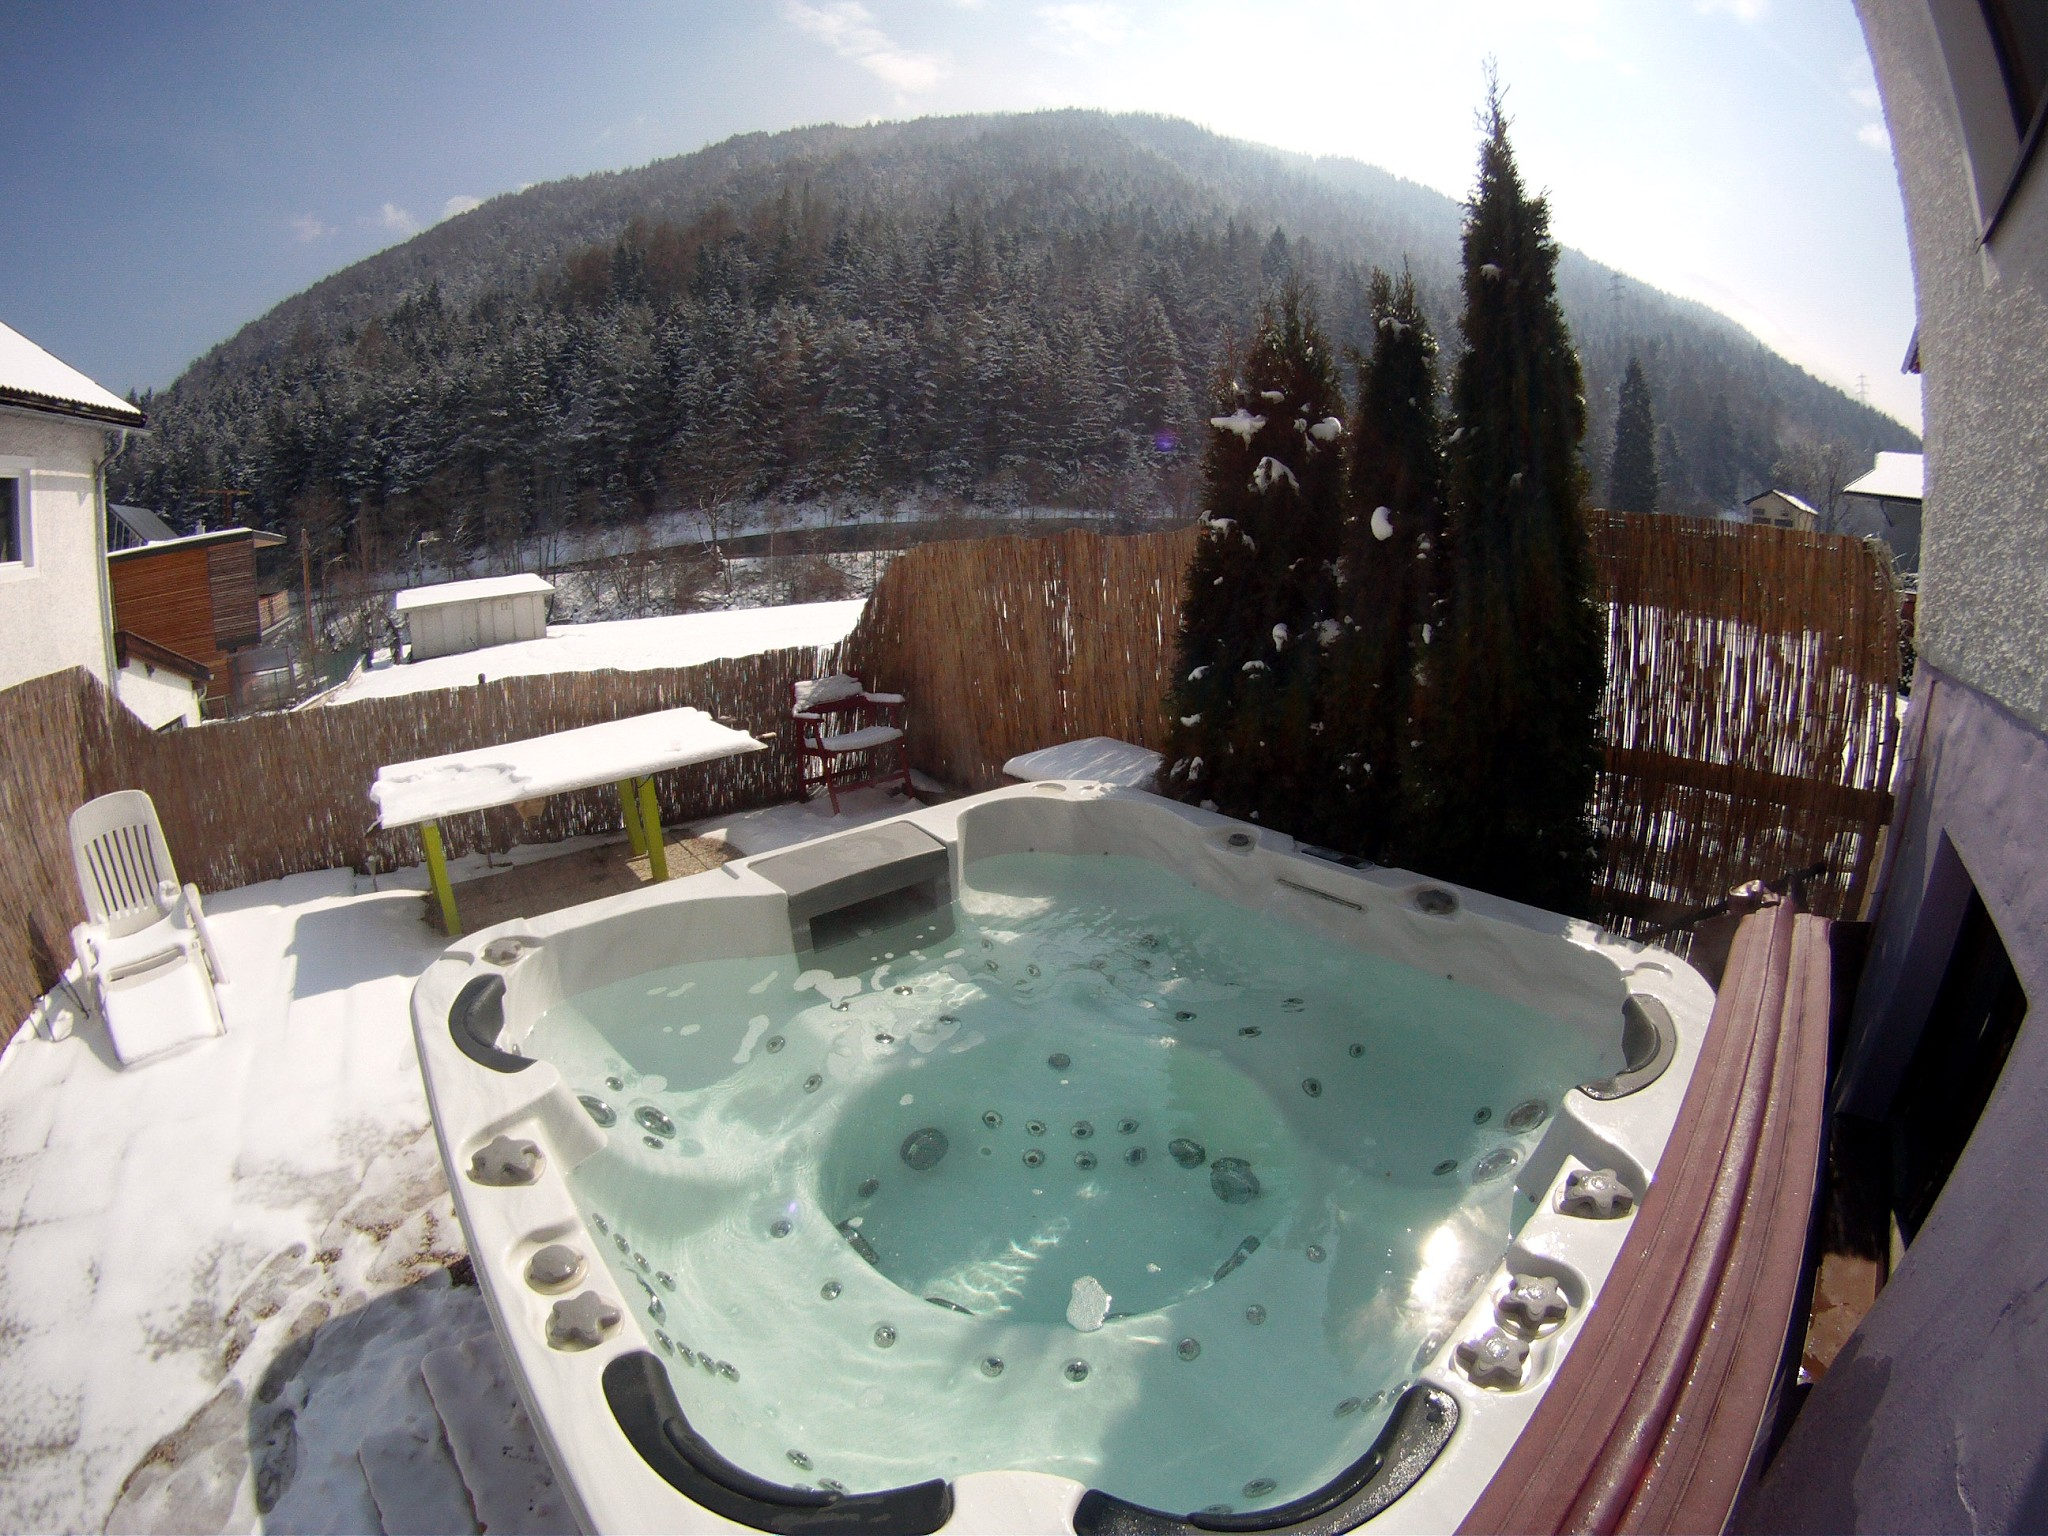 Hot-tub | Doug's Mountain Getaway